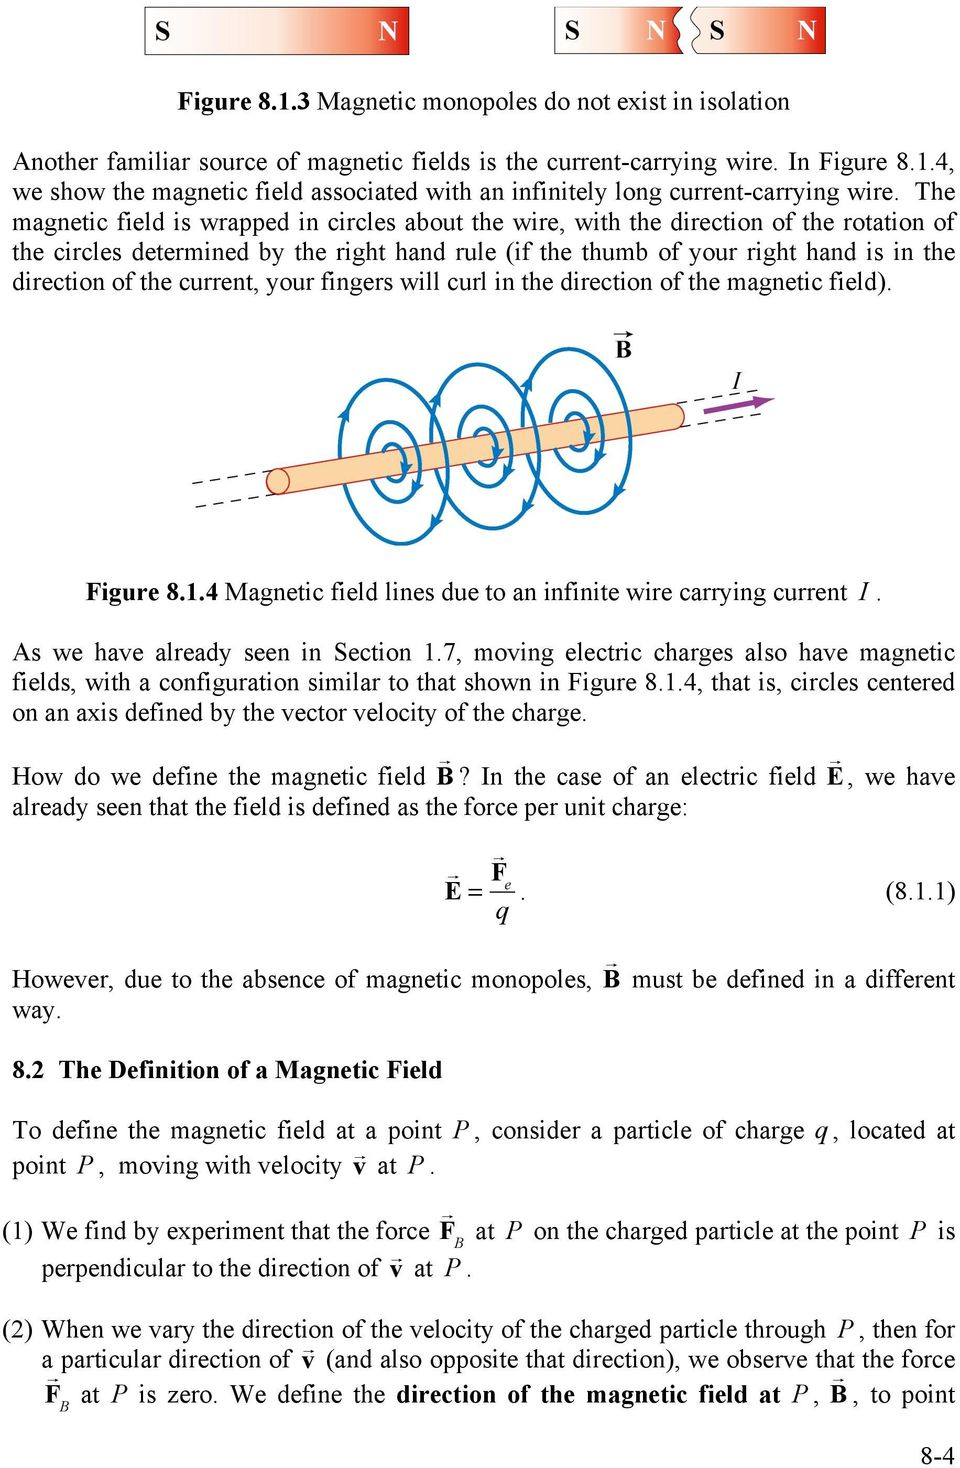 chapter 8. magnetic field - pdf